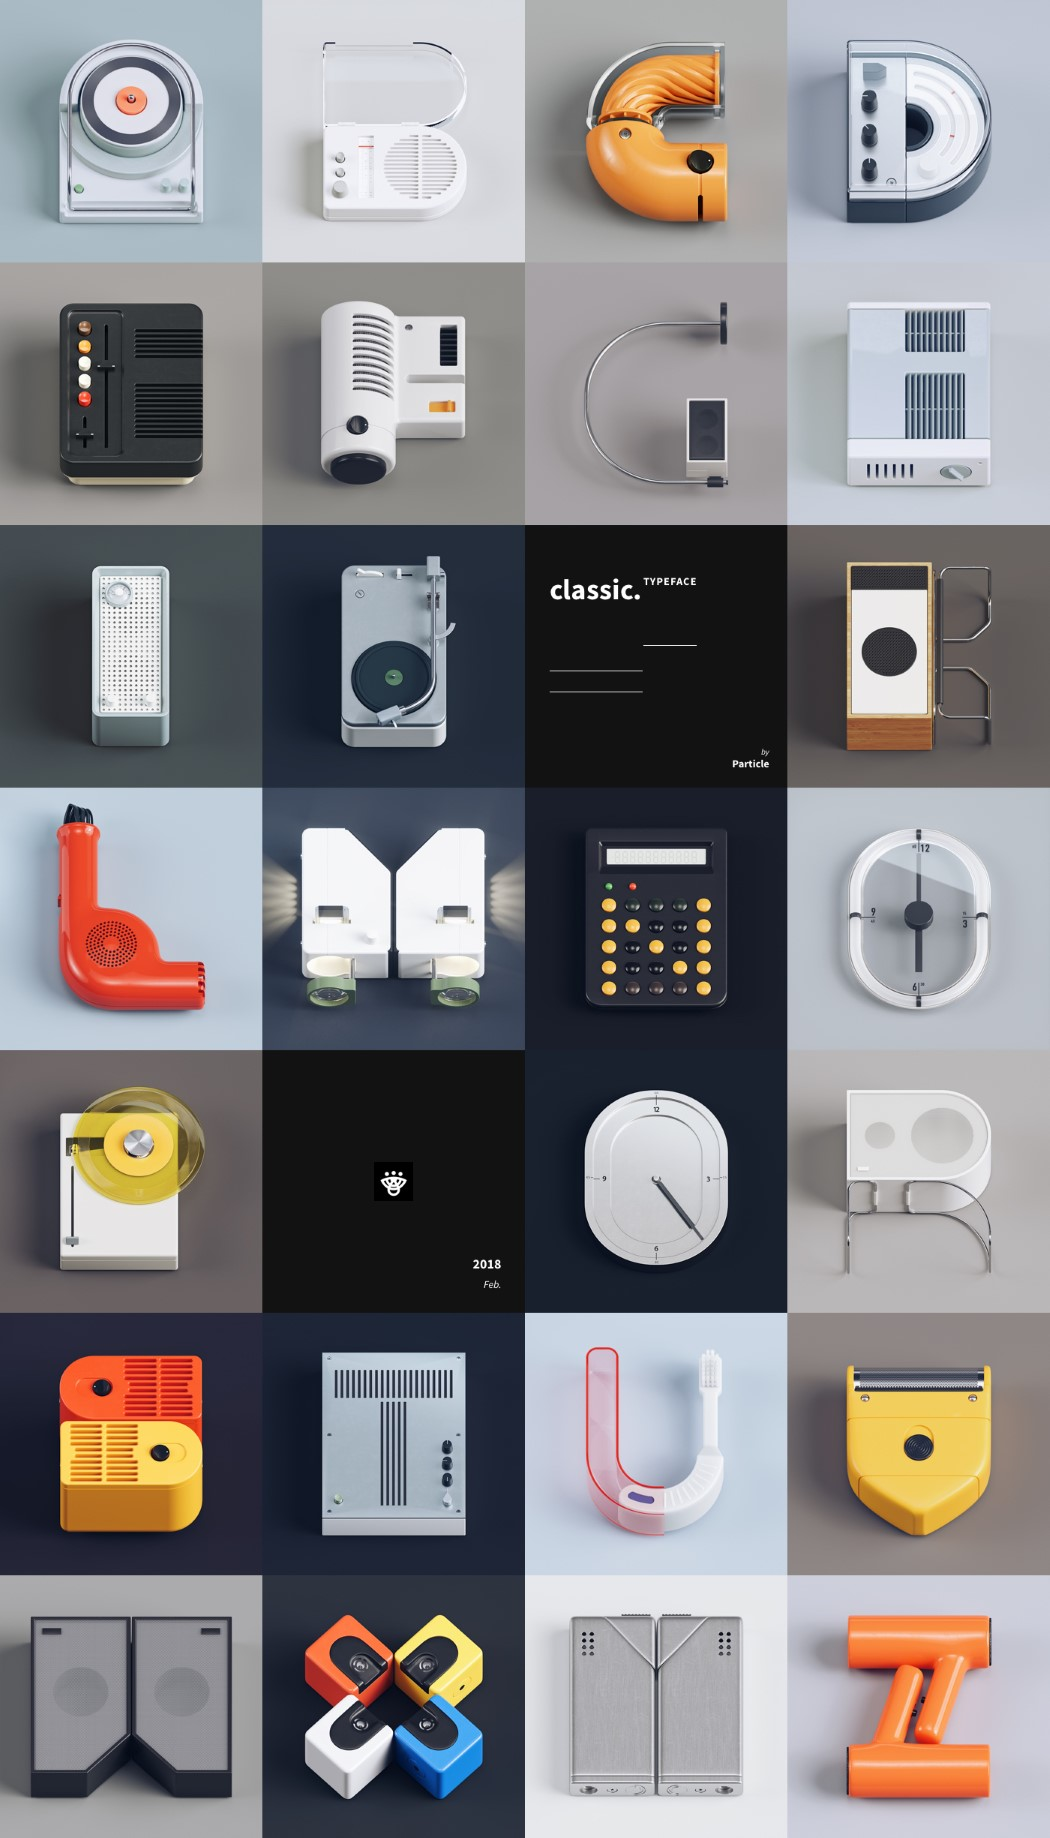 Braun product design turned into the alphabet